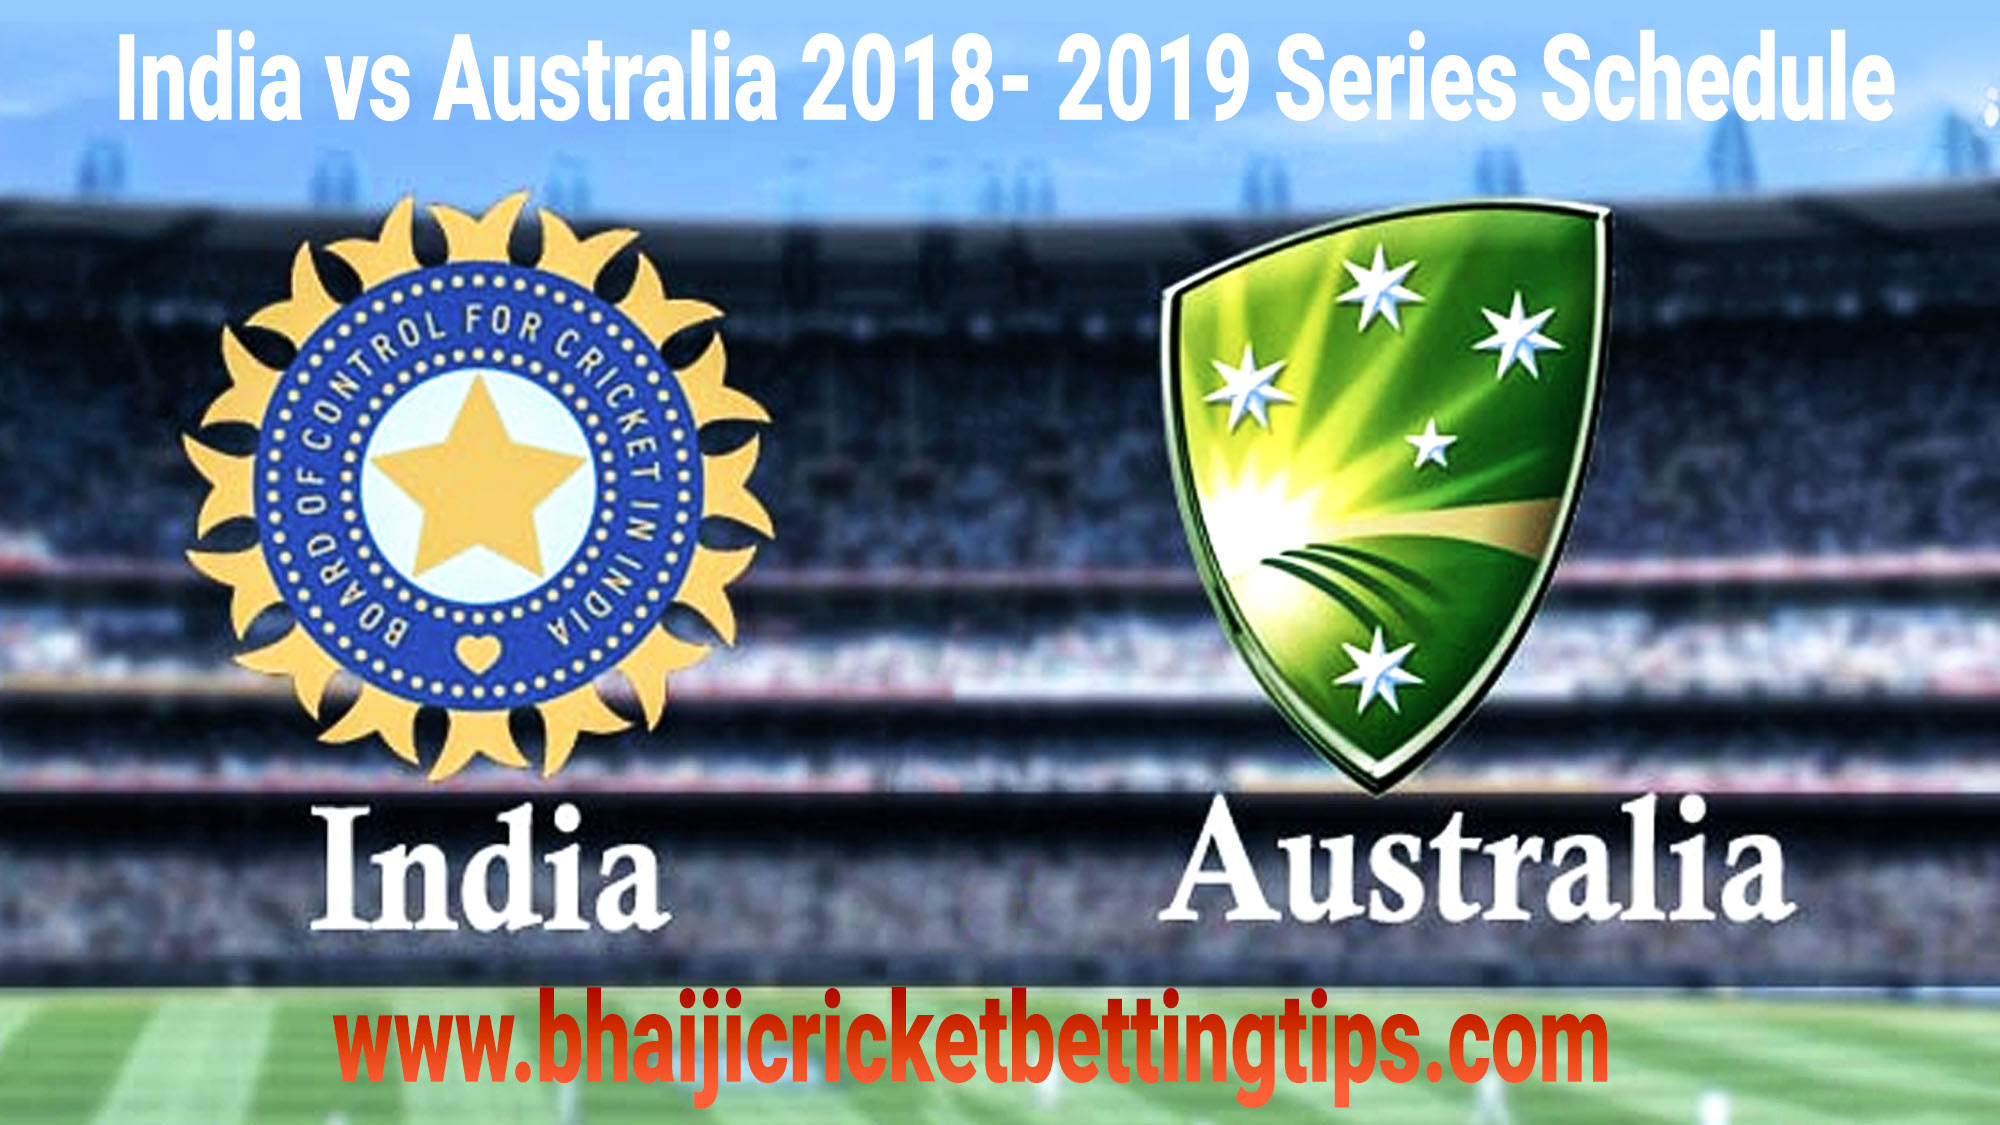 India vs Australia 2018- 2019 Series Schedule